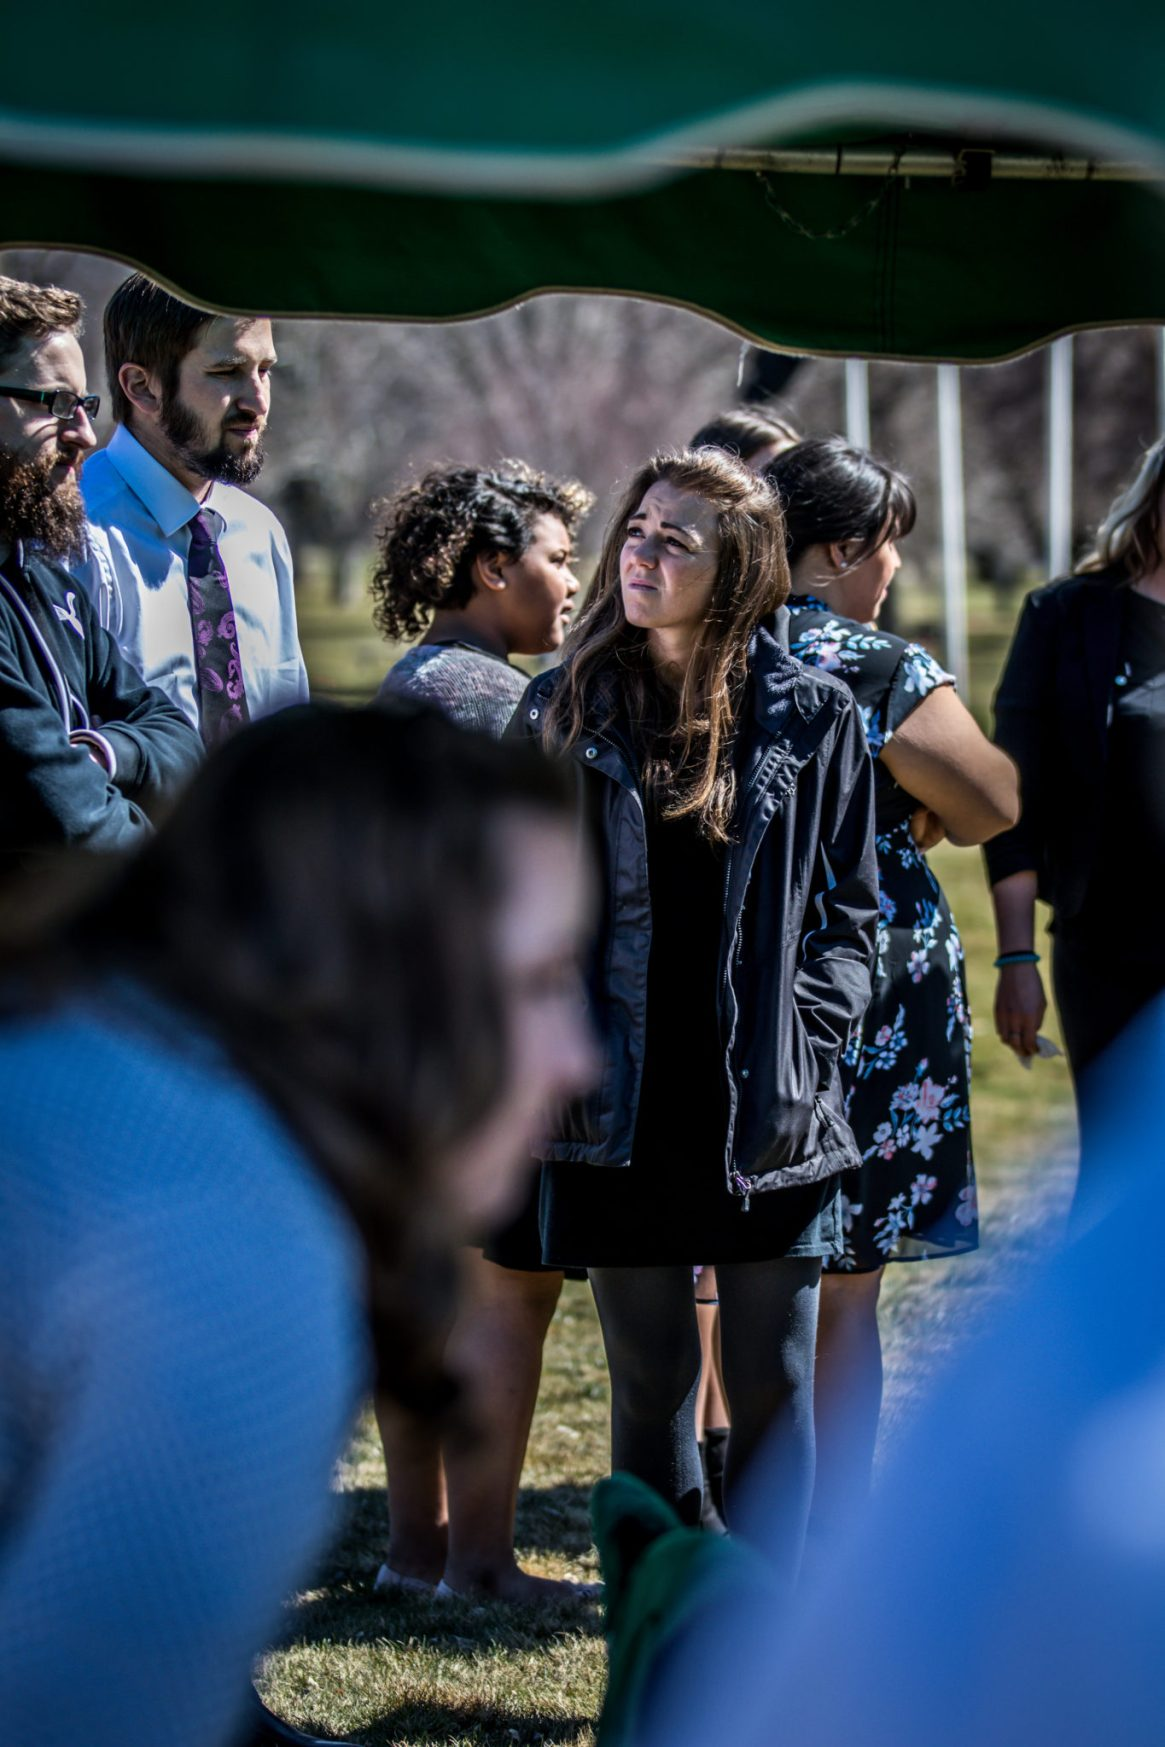 confused sad friend at mom's funeral cemetery photography for funerals Ryan hender films